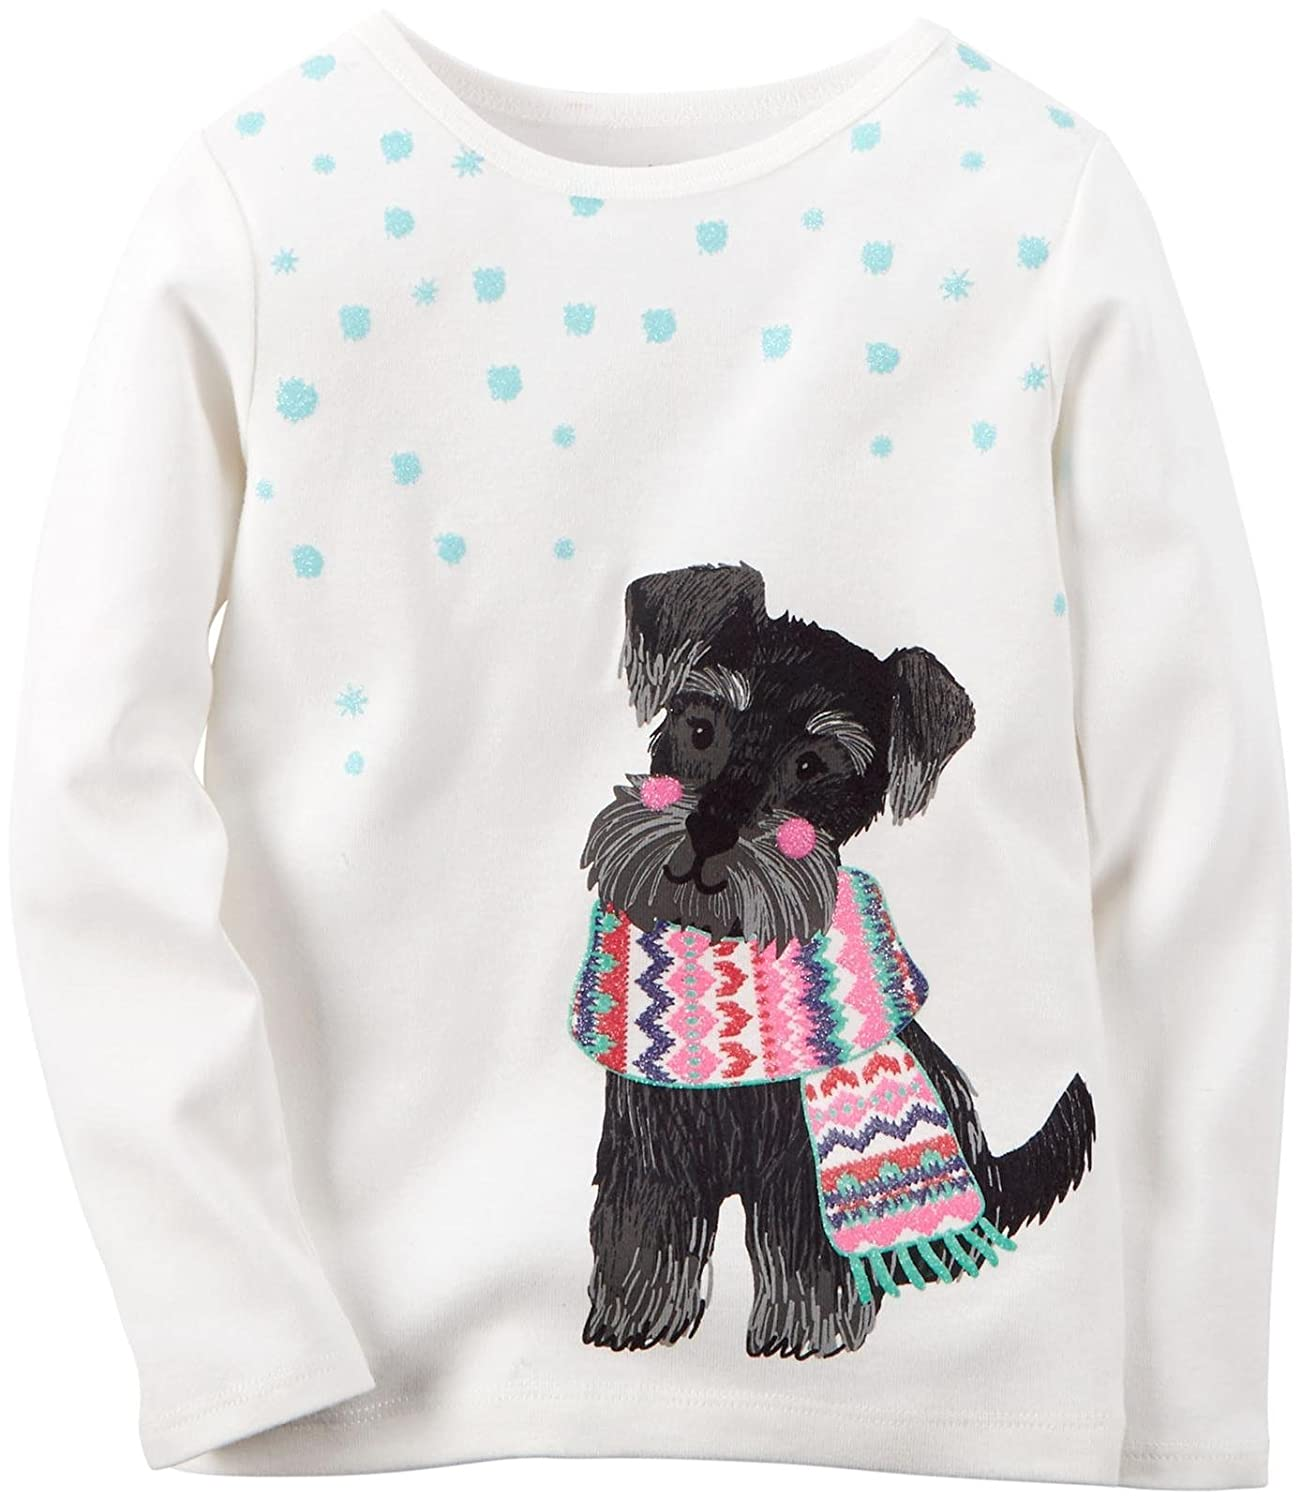 Carters Baby Girls Graphic Top 9 Months Puppy